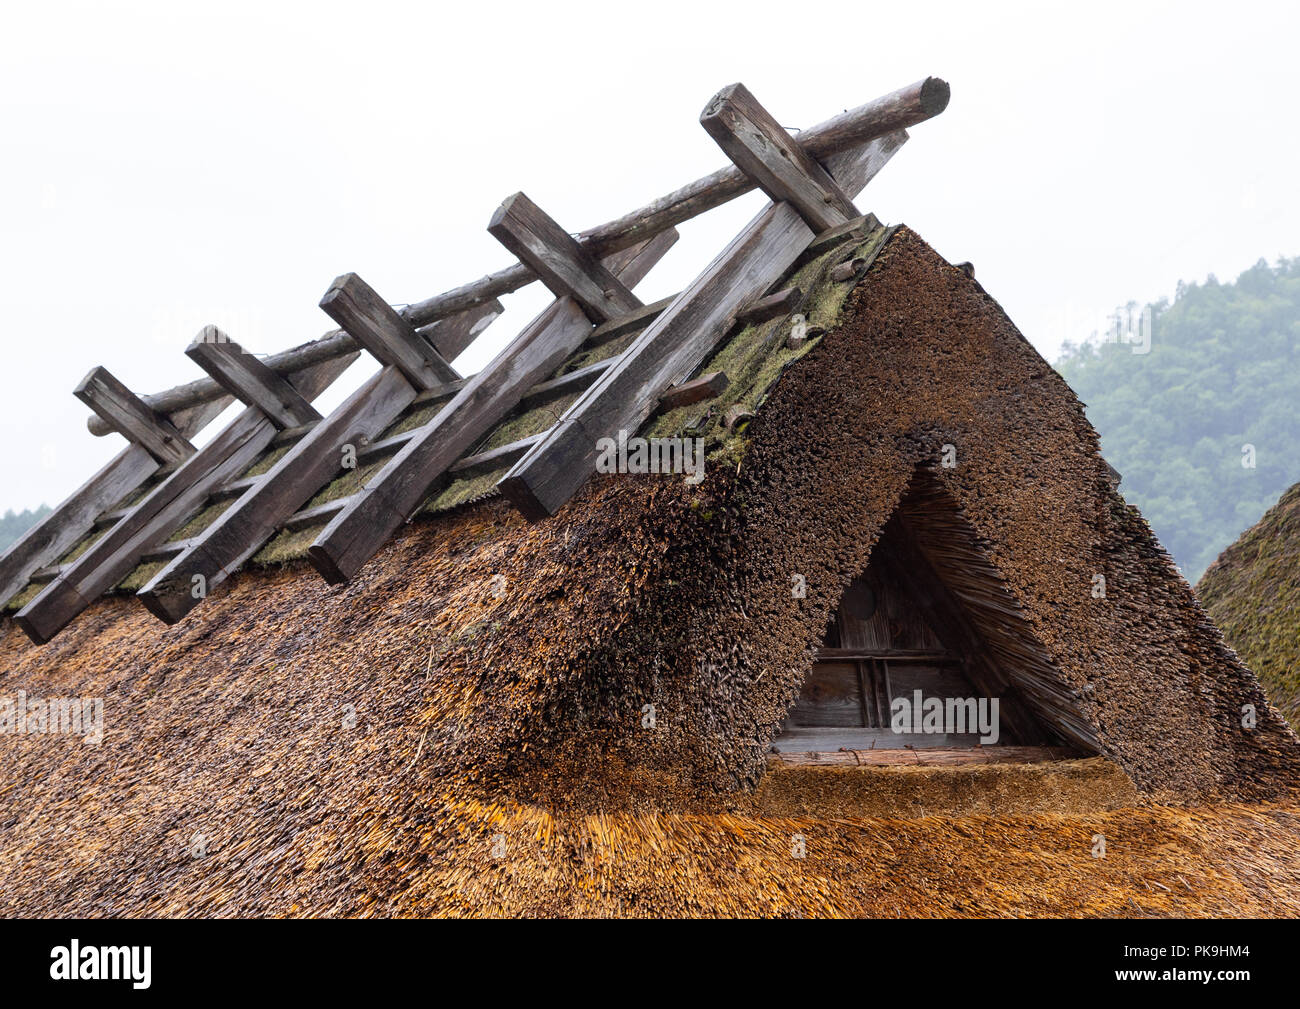 Thatched roofed house in a traditional village, Kyoto Prefecture, Miyama, Japan - Stock Image